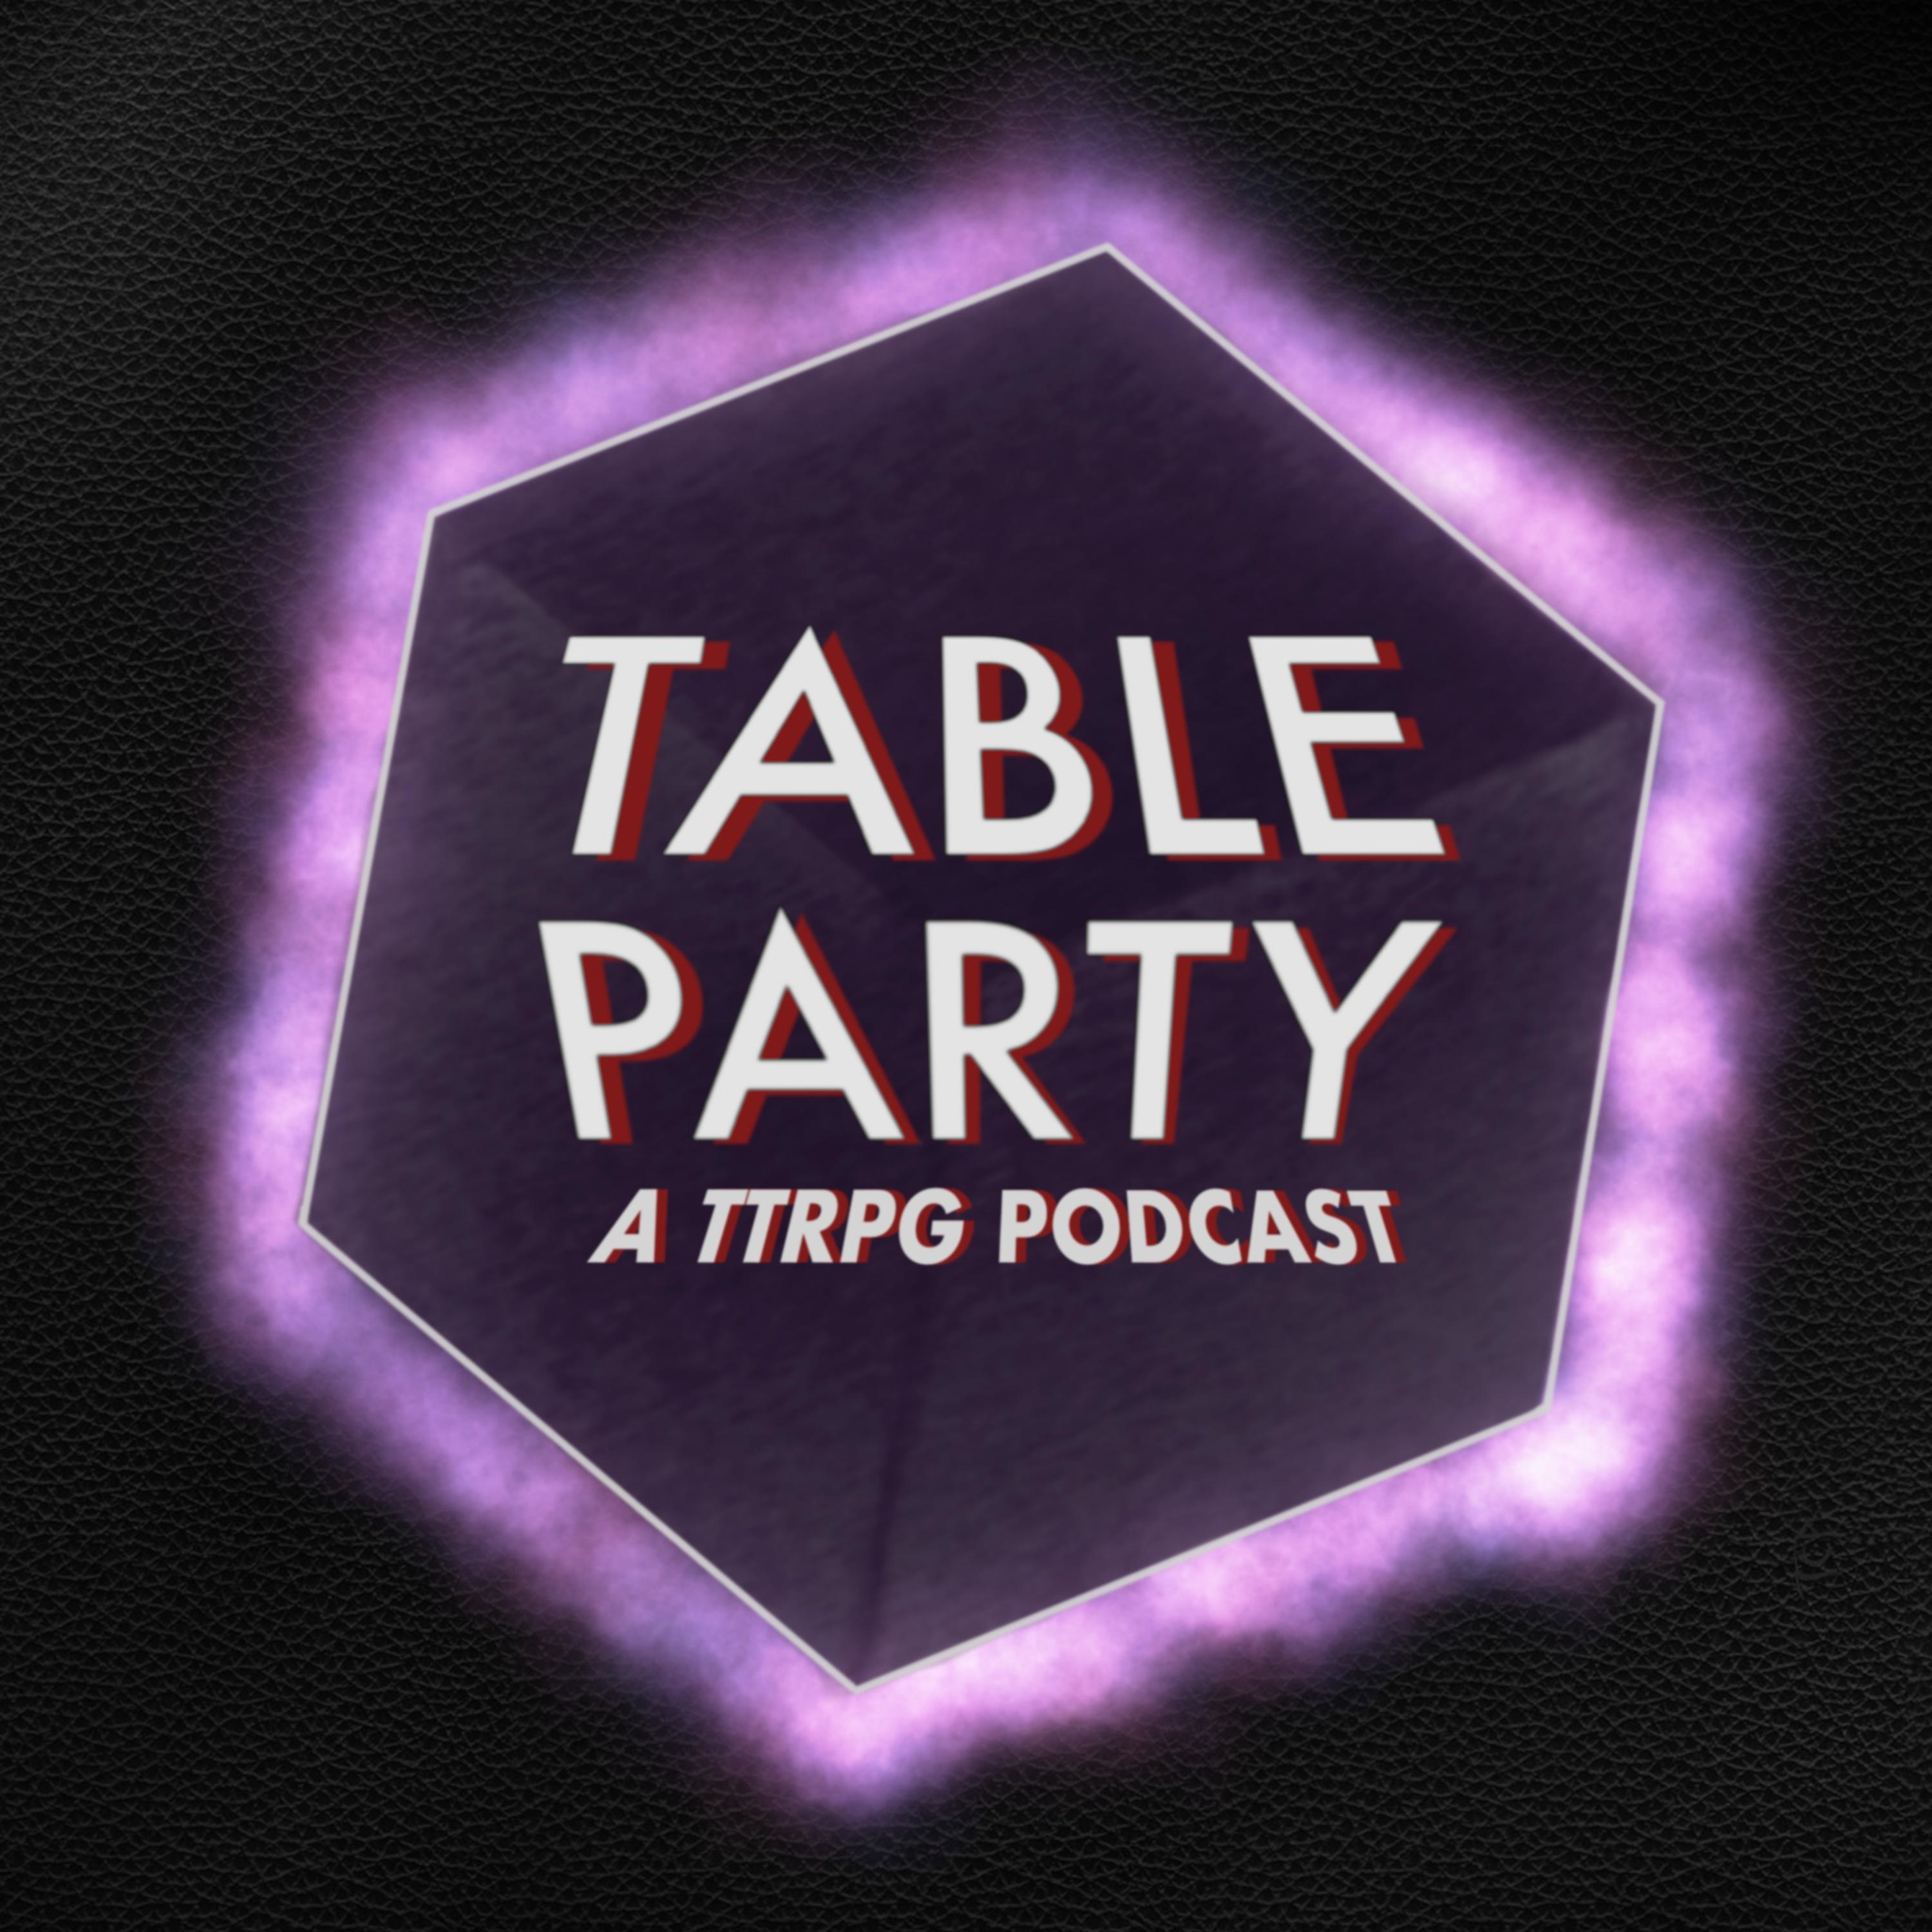 Table Party